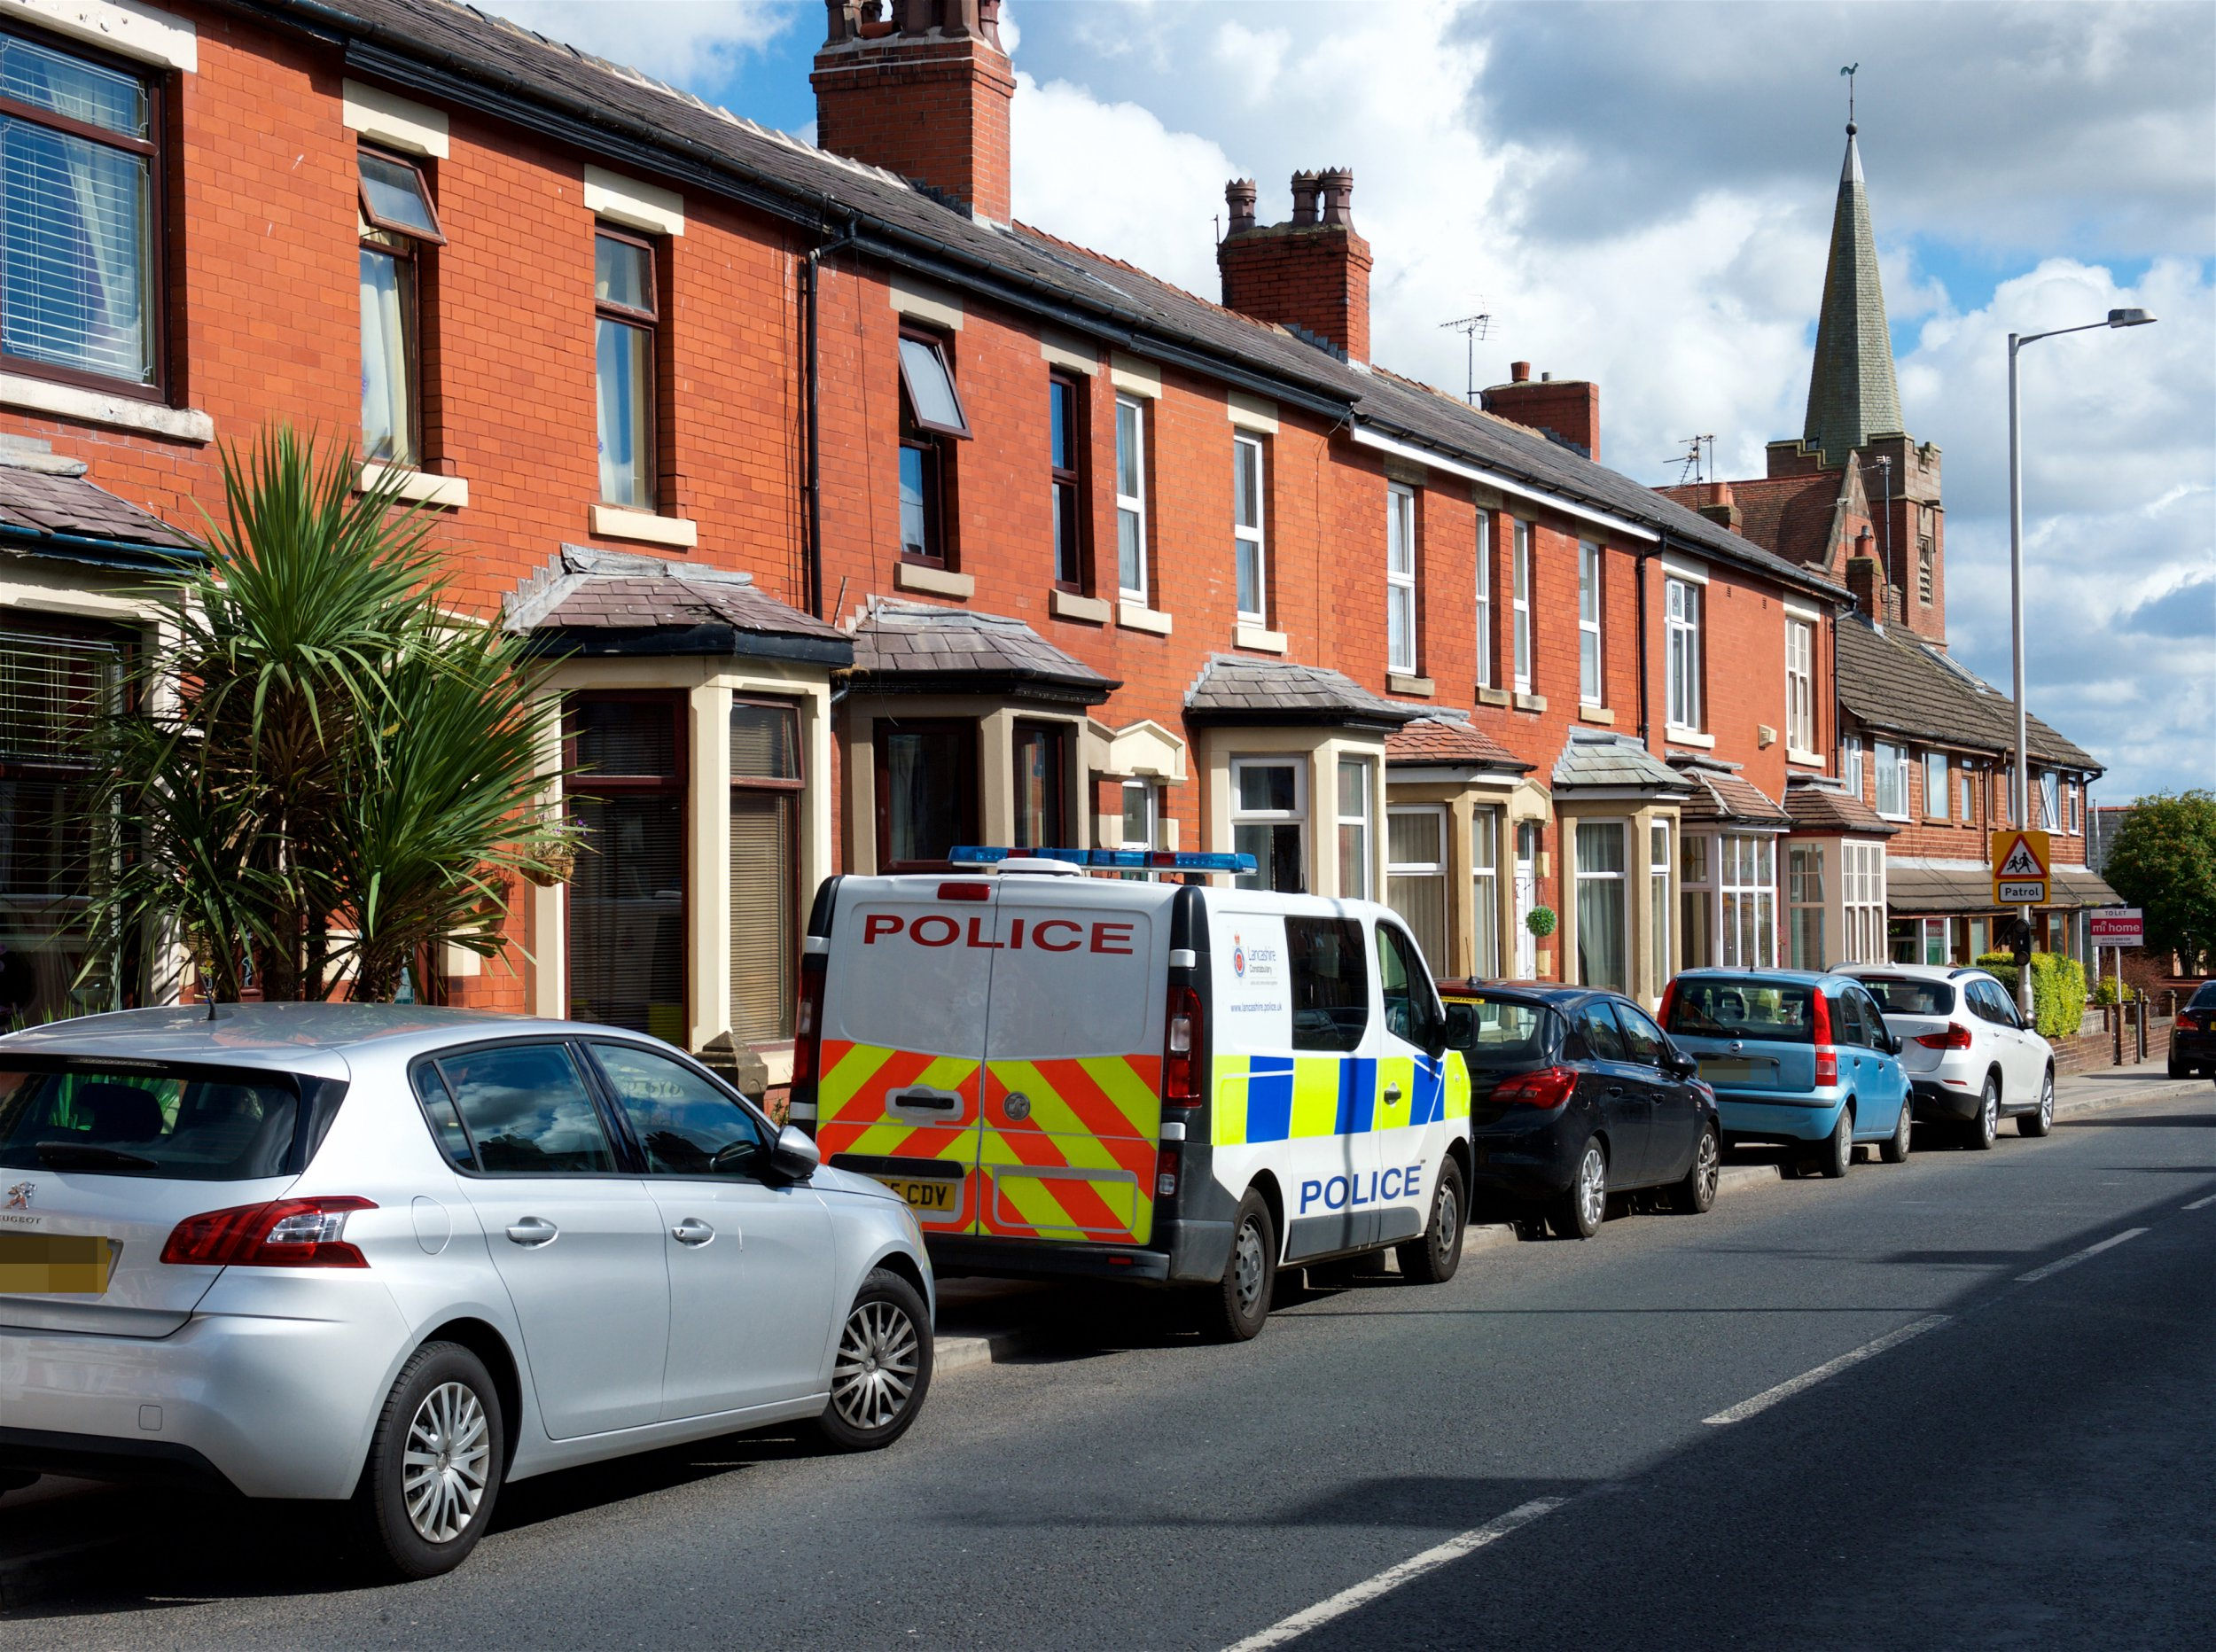 ?? WARREN SMITH 2018 SHOWS THE SCENE 10.8.18 ON GARSTANG RD NORTH WESHAM LANCS. WHERE A NEWBORN BABY WAS FOUND DEAD BY POLICE ON 9.8.18. SEE COPY.